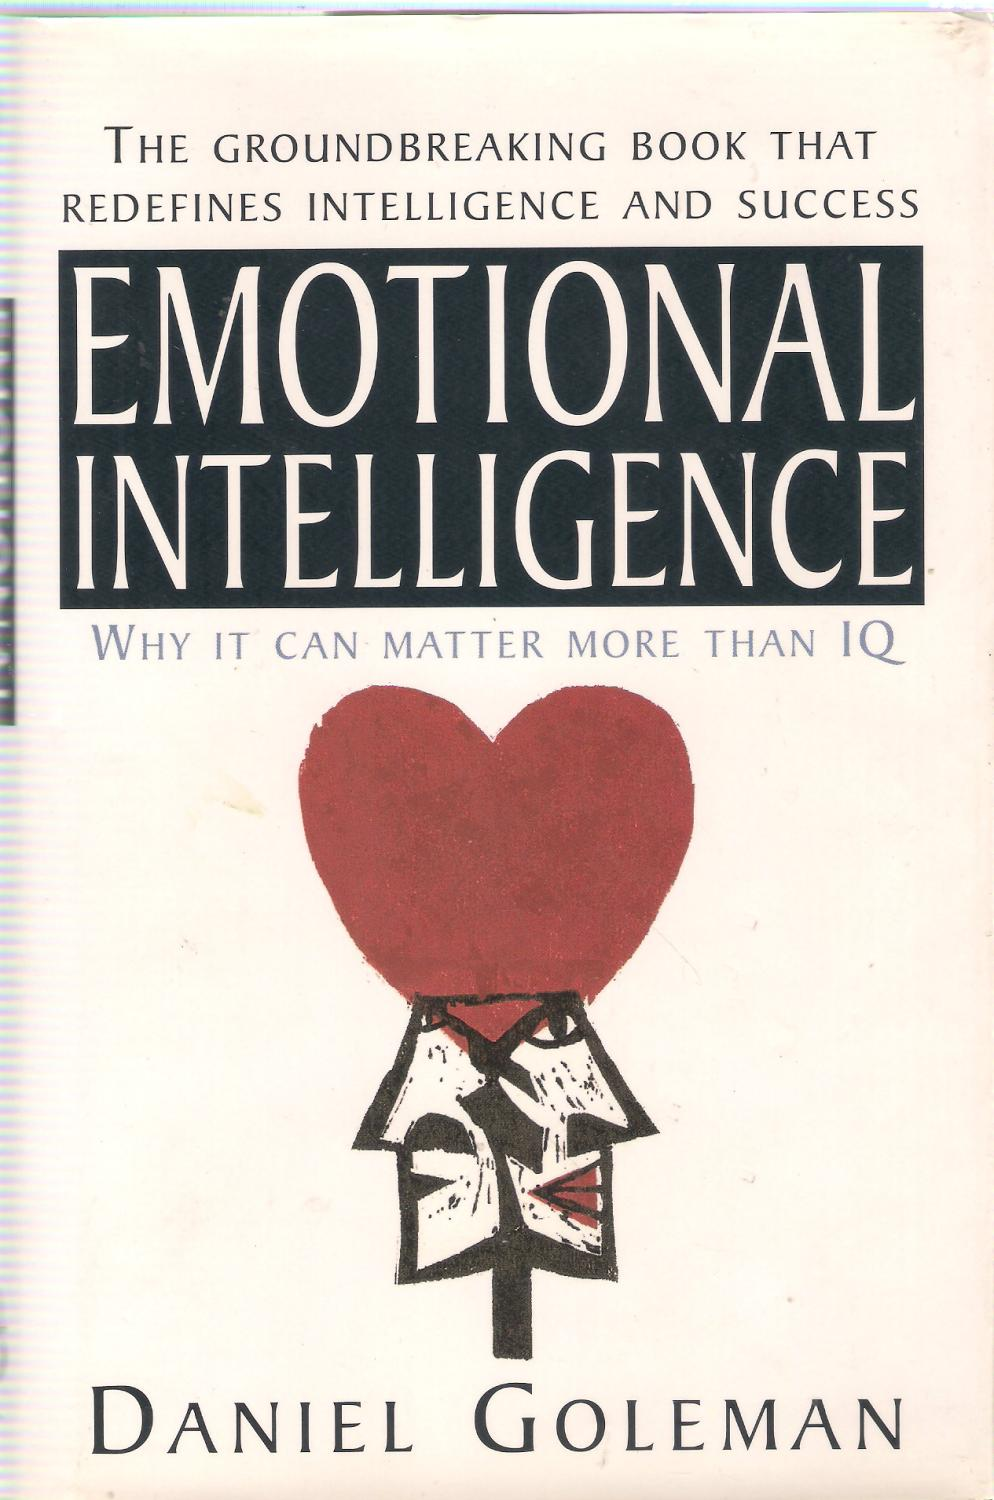 1095135 Emotional Intelligence Why It Can Matter More Than IQ books secondhand booksnbobs bookstore